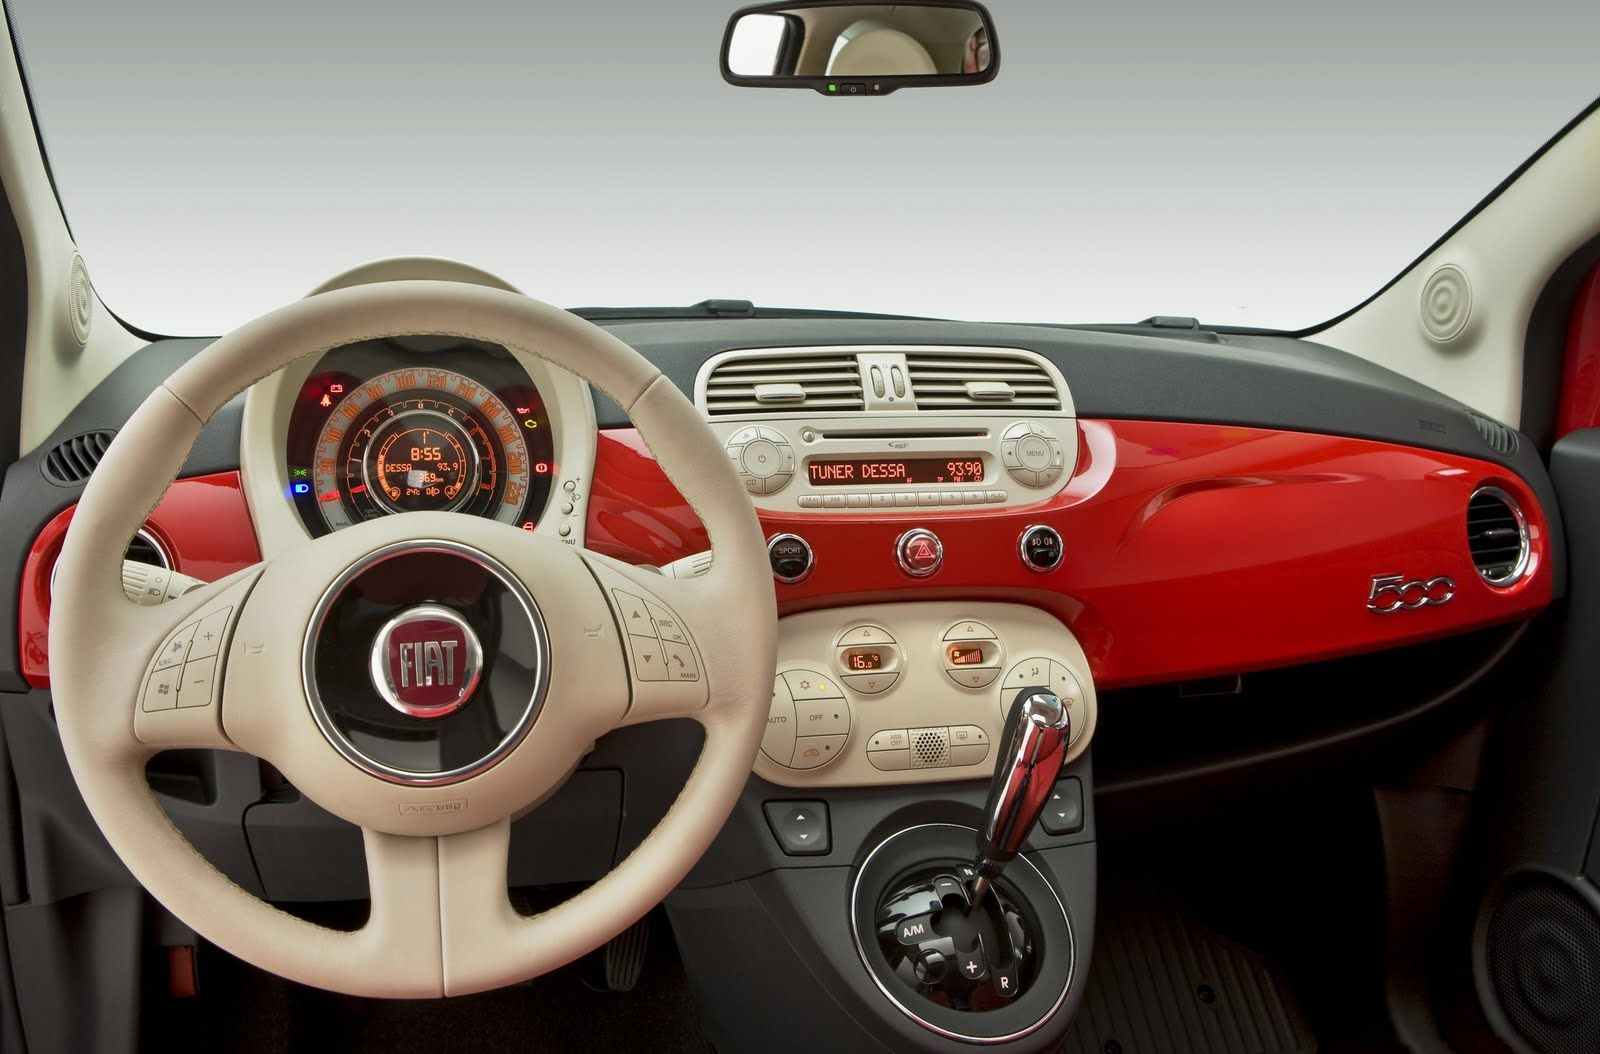 Fiat 500 Interior Automatic Wallpapers Desktop - http://hdcarwallfx ...